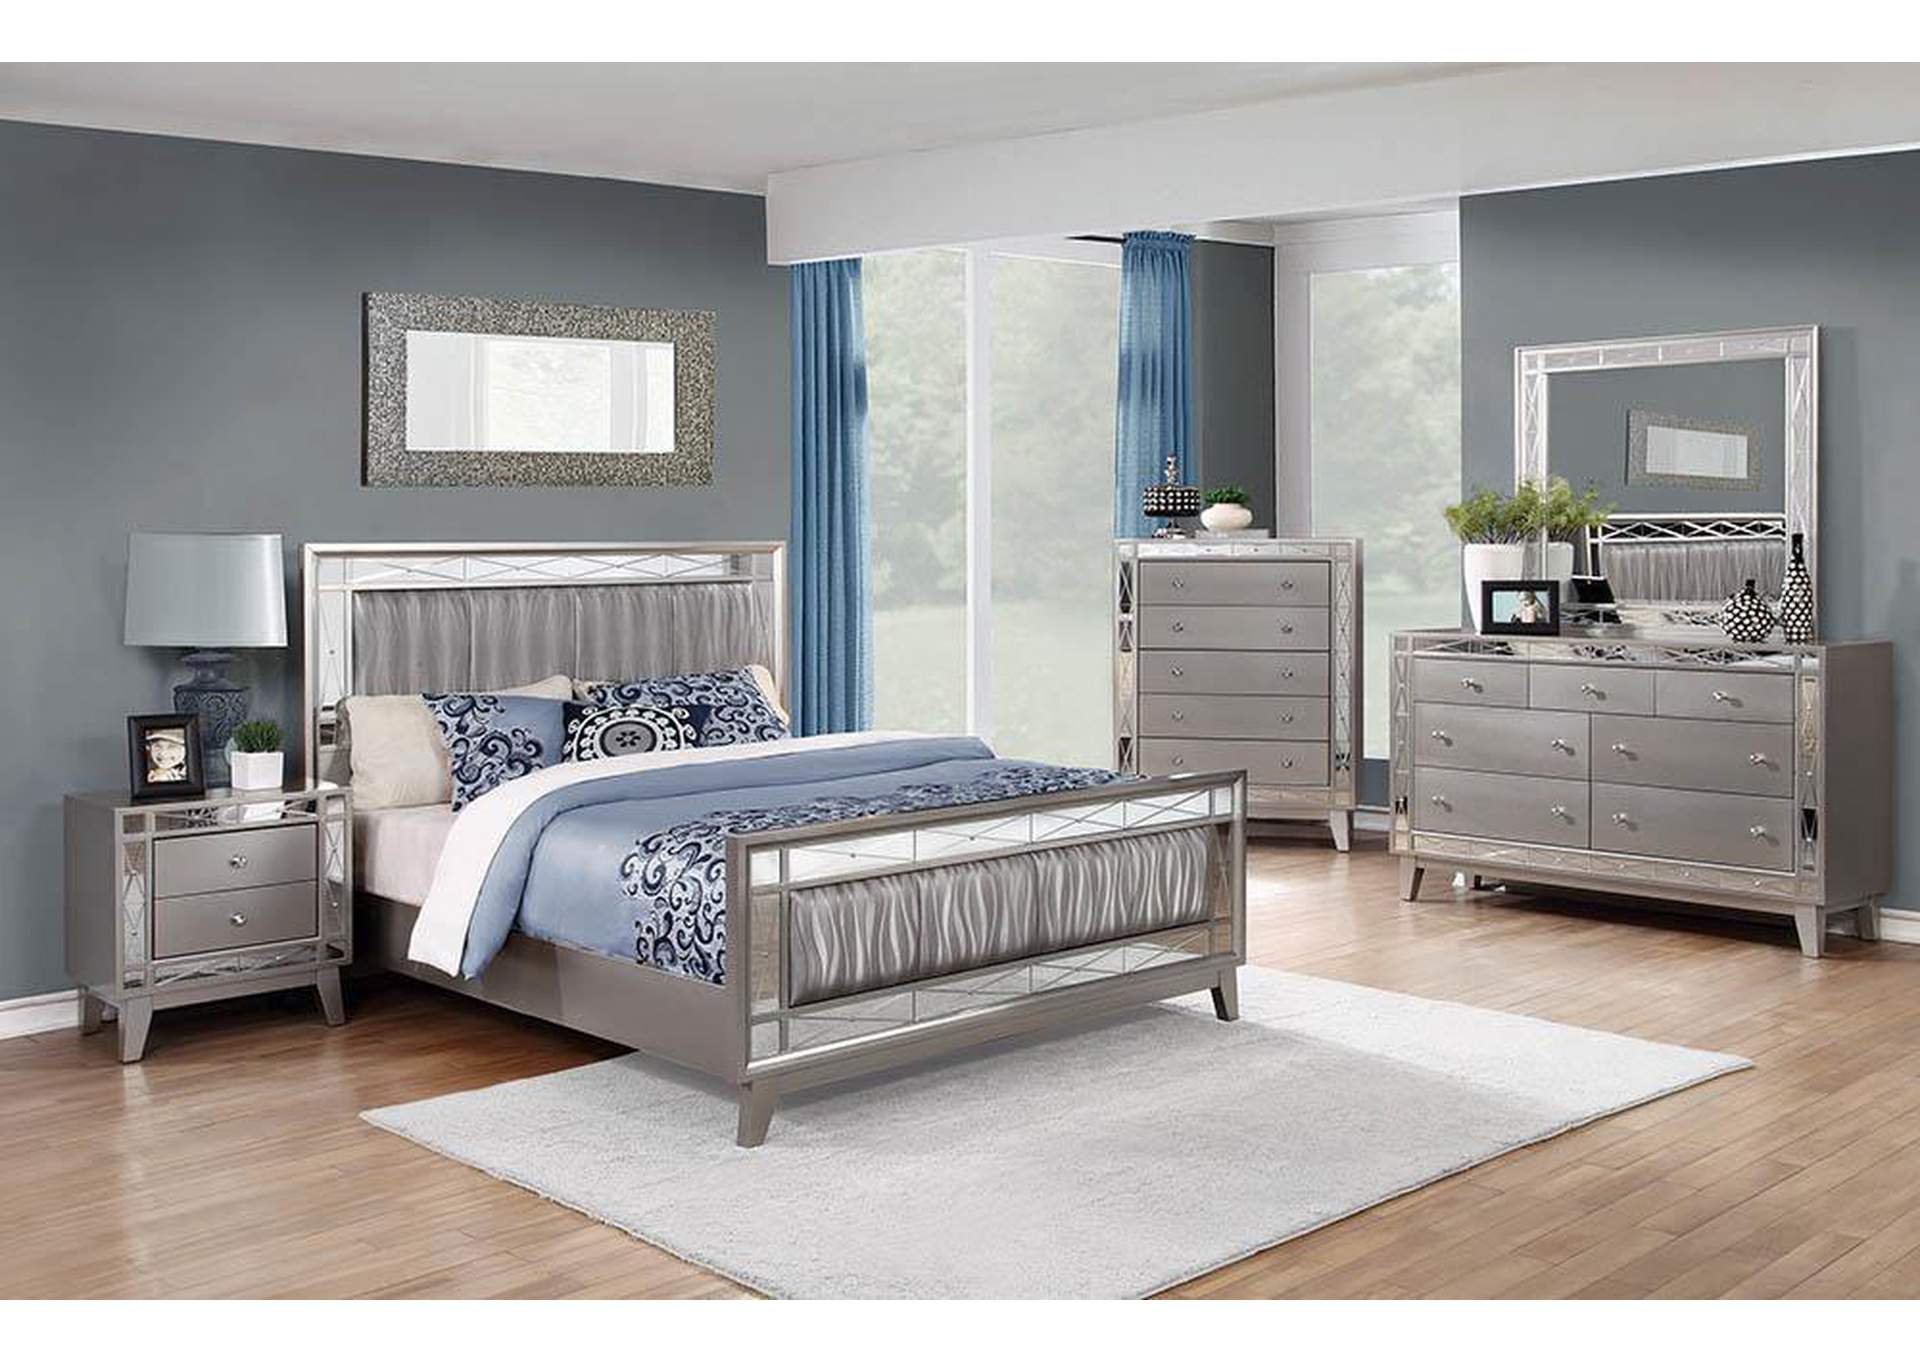 Leighton Metallic Mercury Eastern King Bed,Coaster Furniture